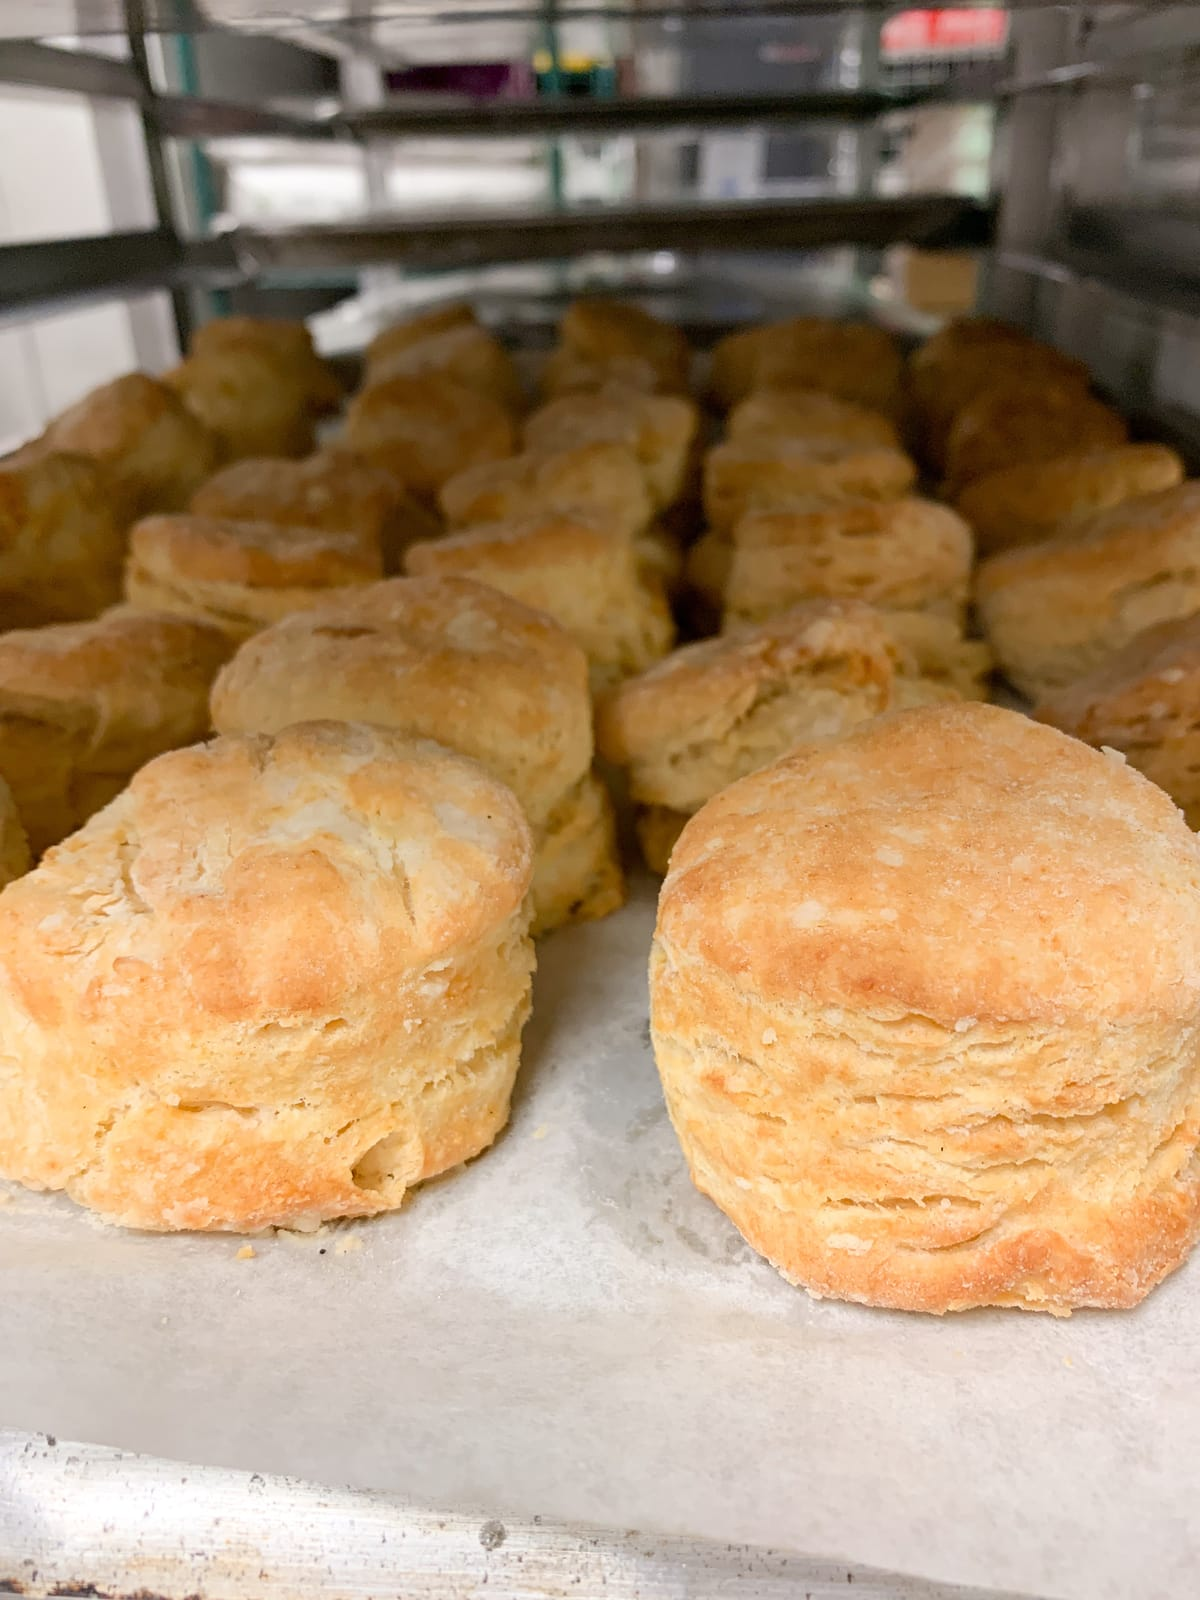 A tray of biscuits on a speed rack